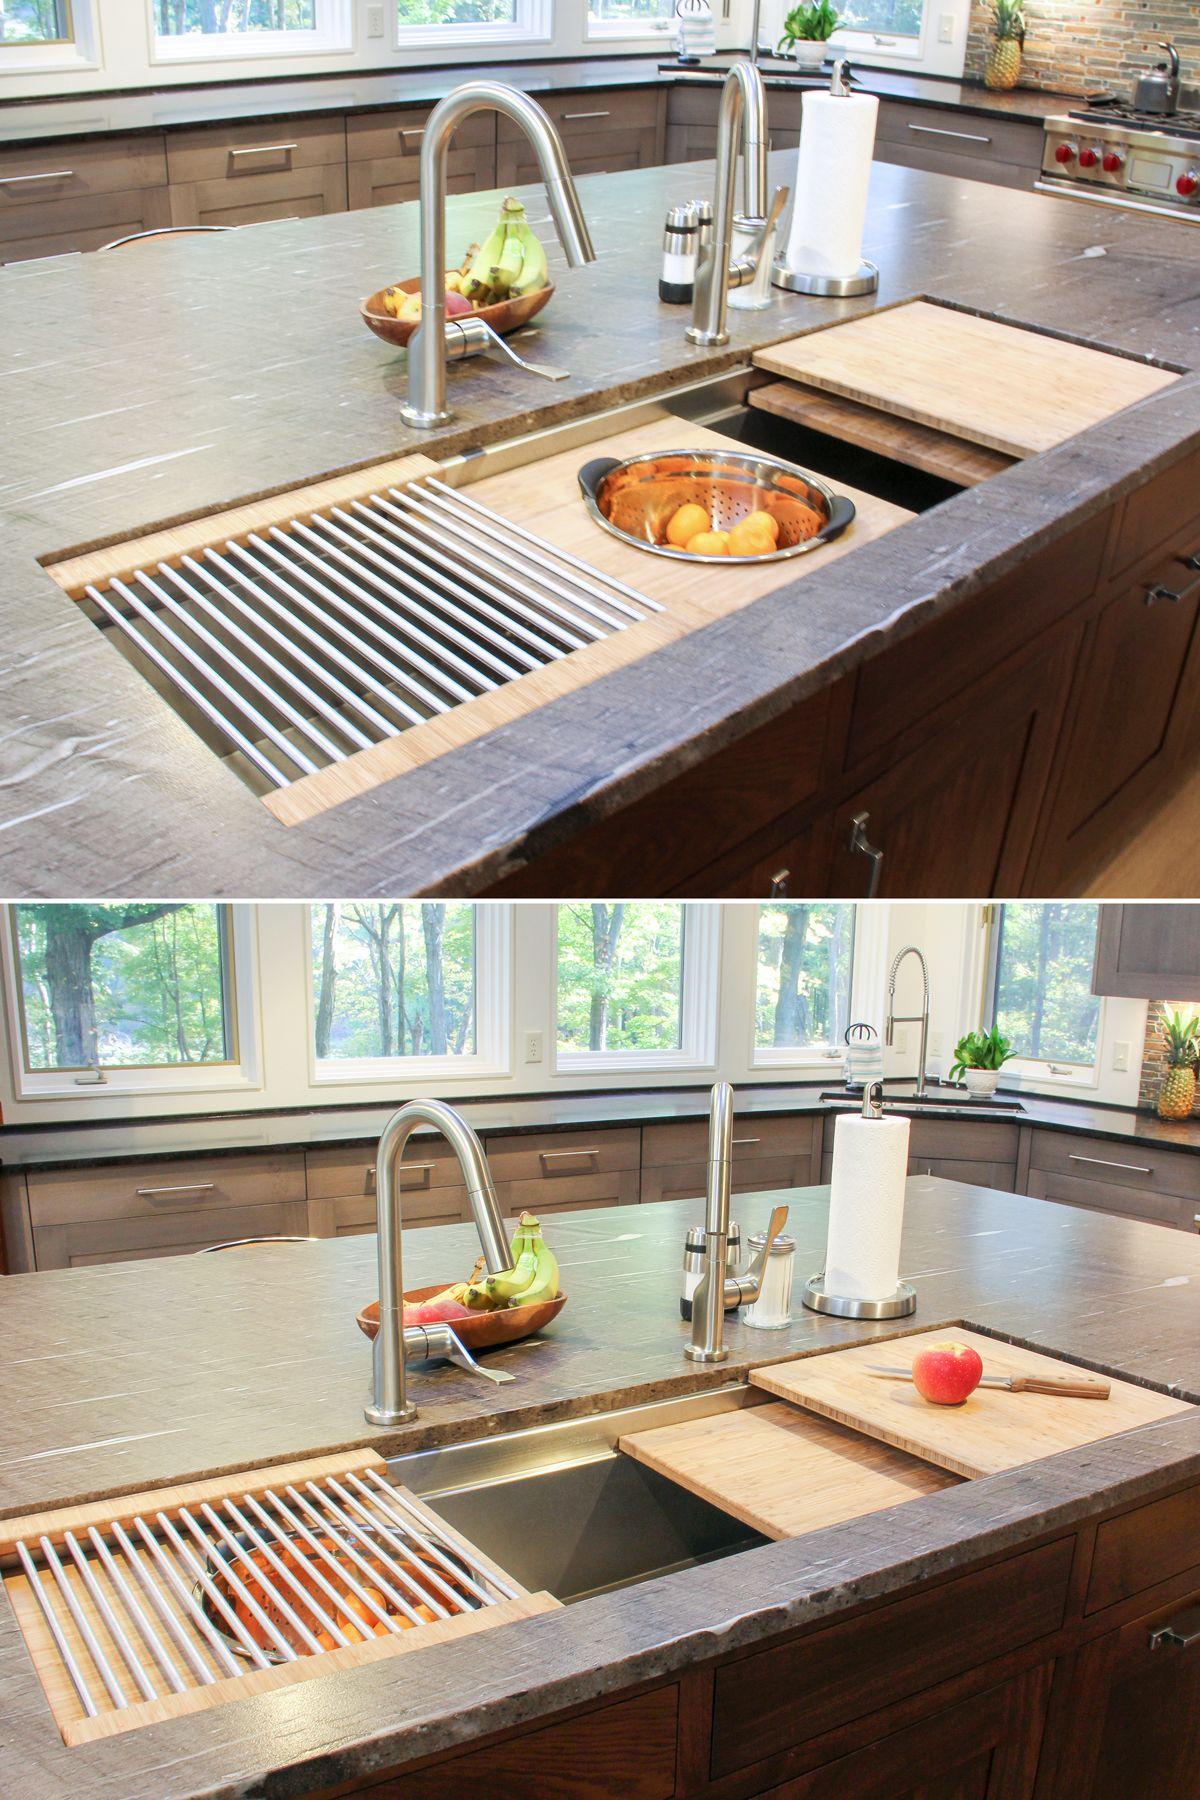 Modern Dish Racks And Built In Cabinet Dish Dryers Design: Kitchen Island Sink With Cutting Boards, Colander And Dish